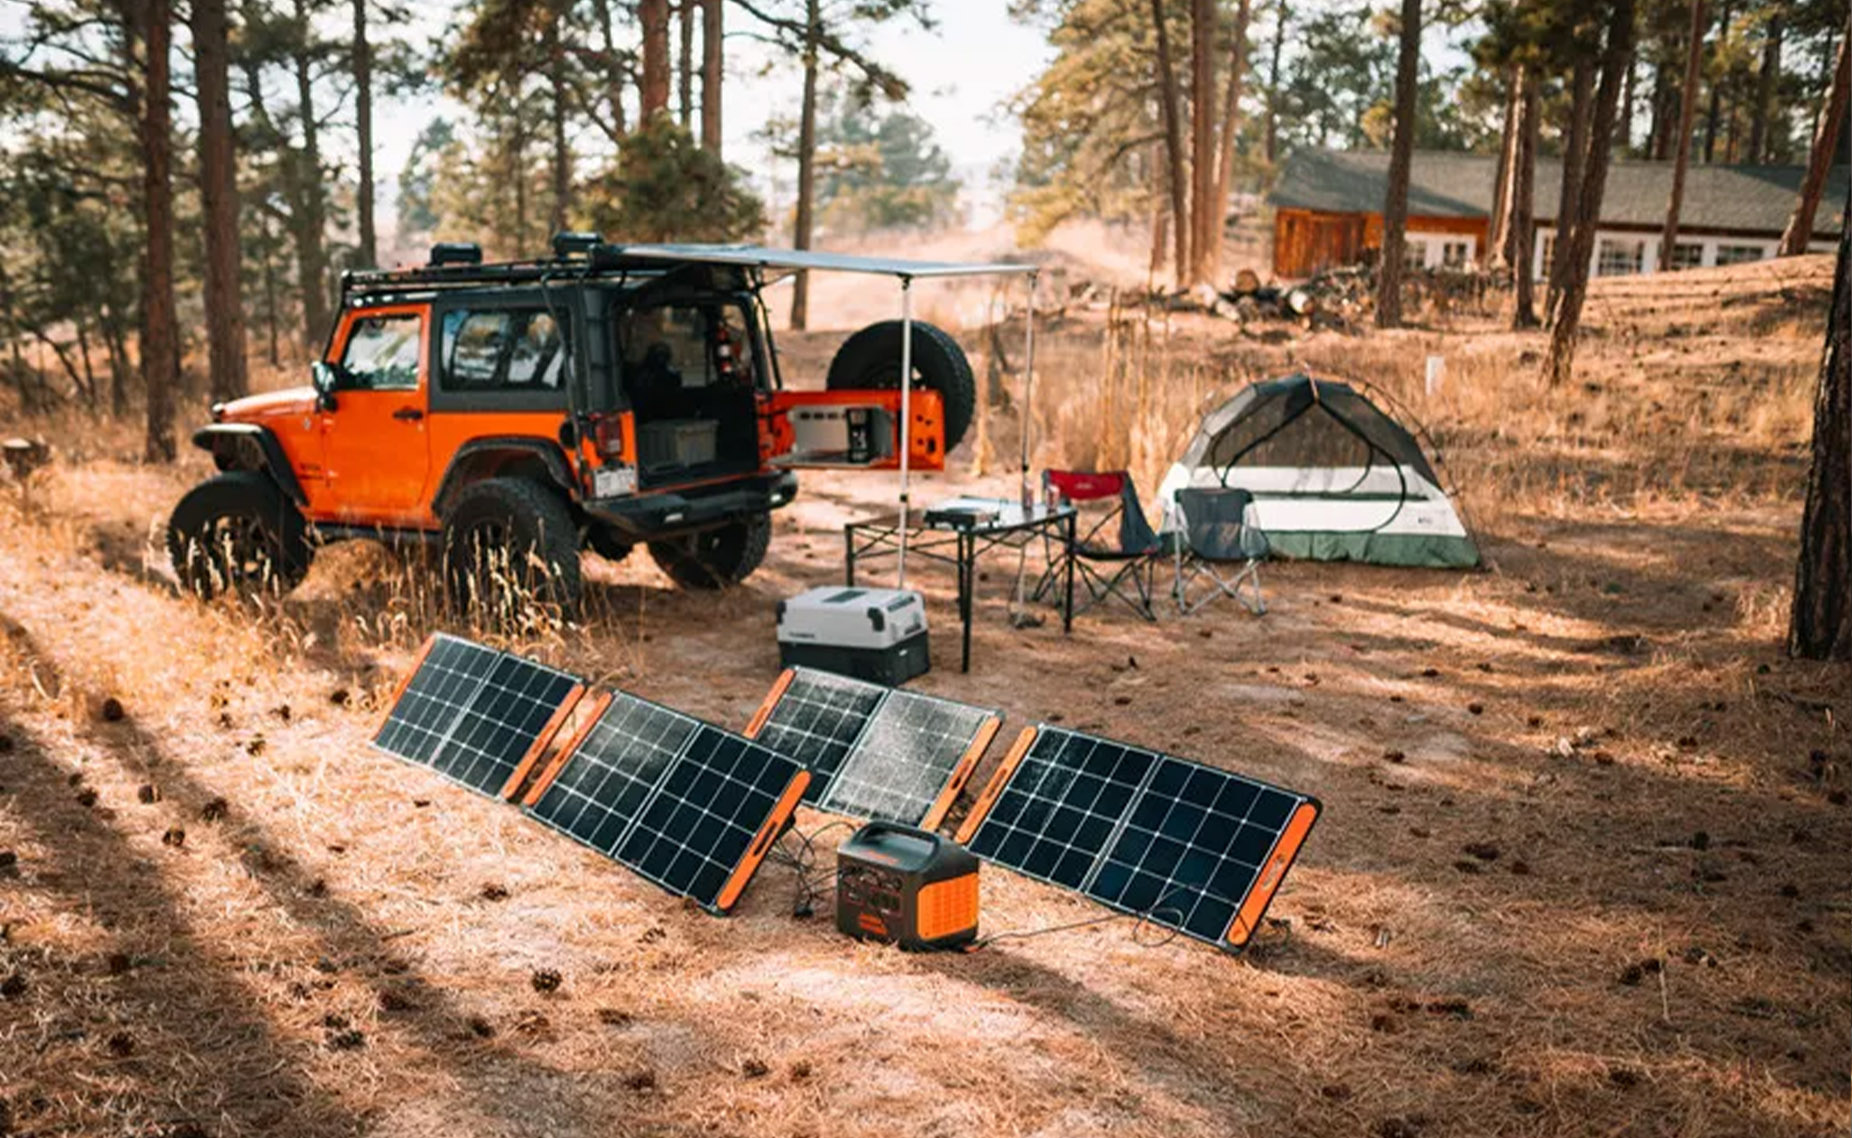 <p>This solar generator gave me a tiny, sweet taste of living off the grid thumbnail